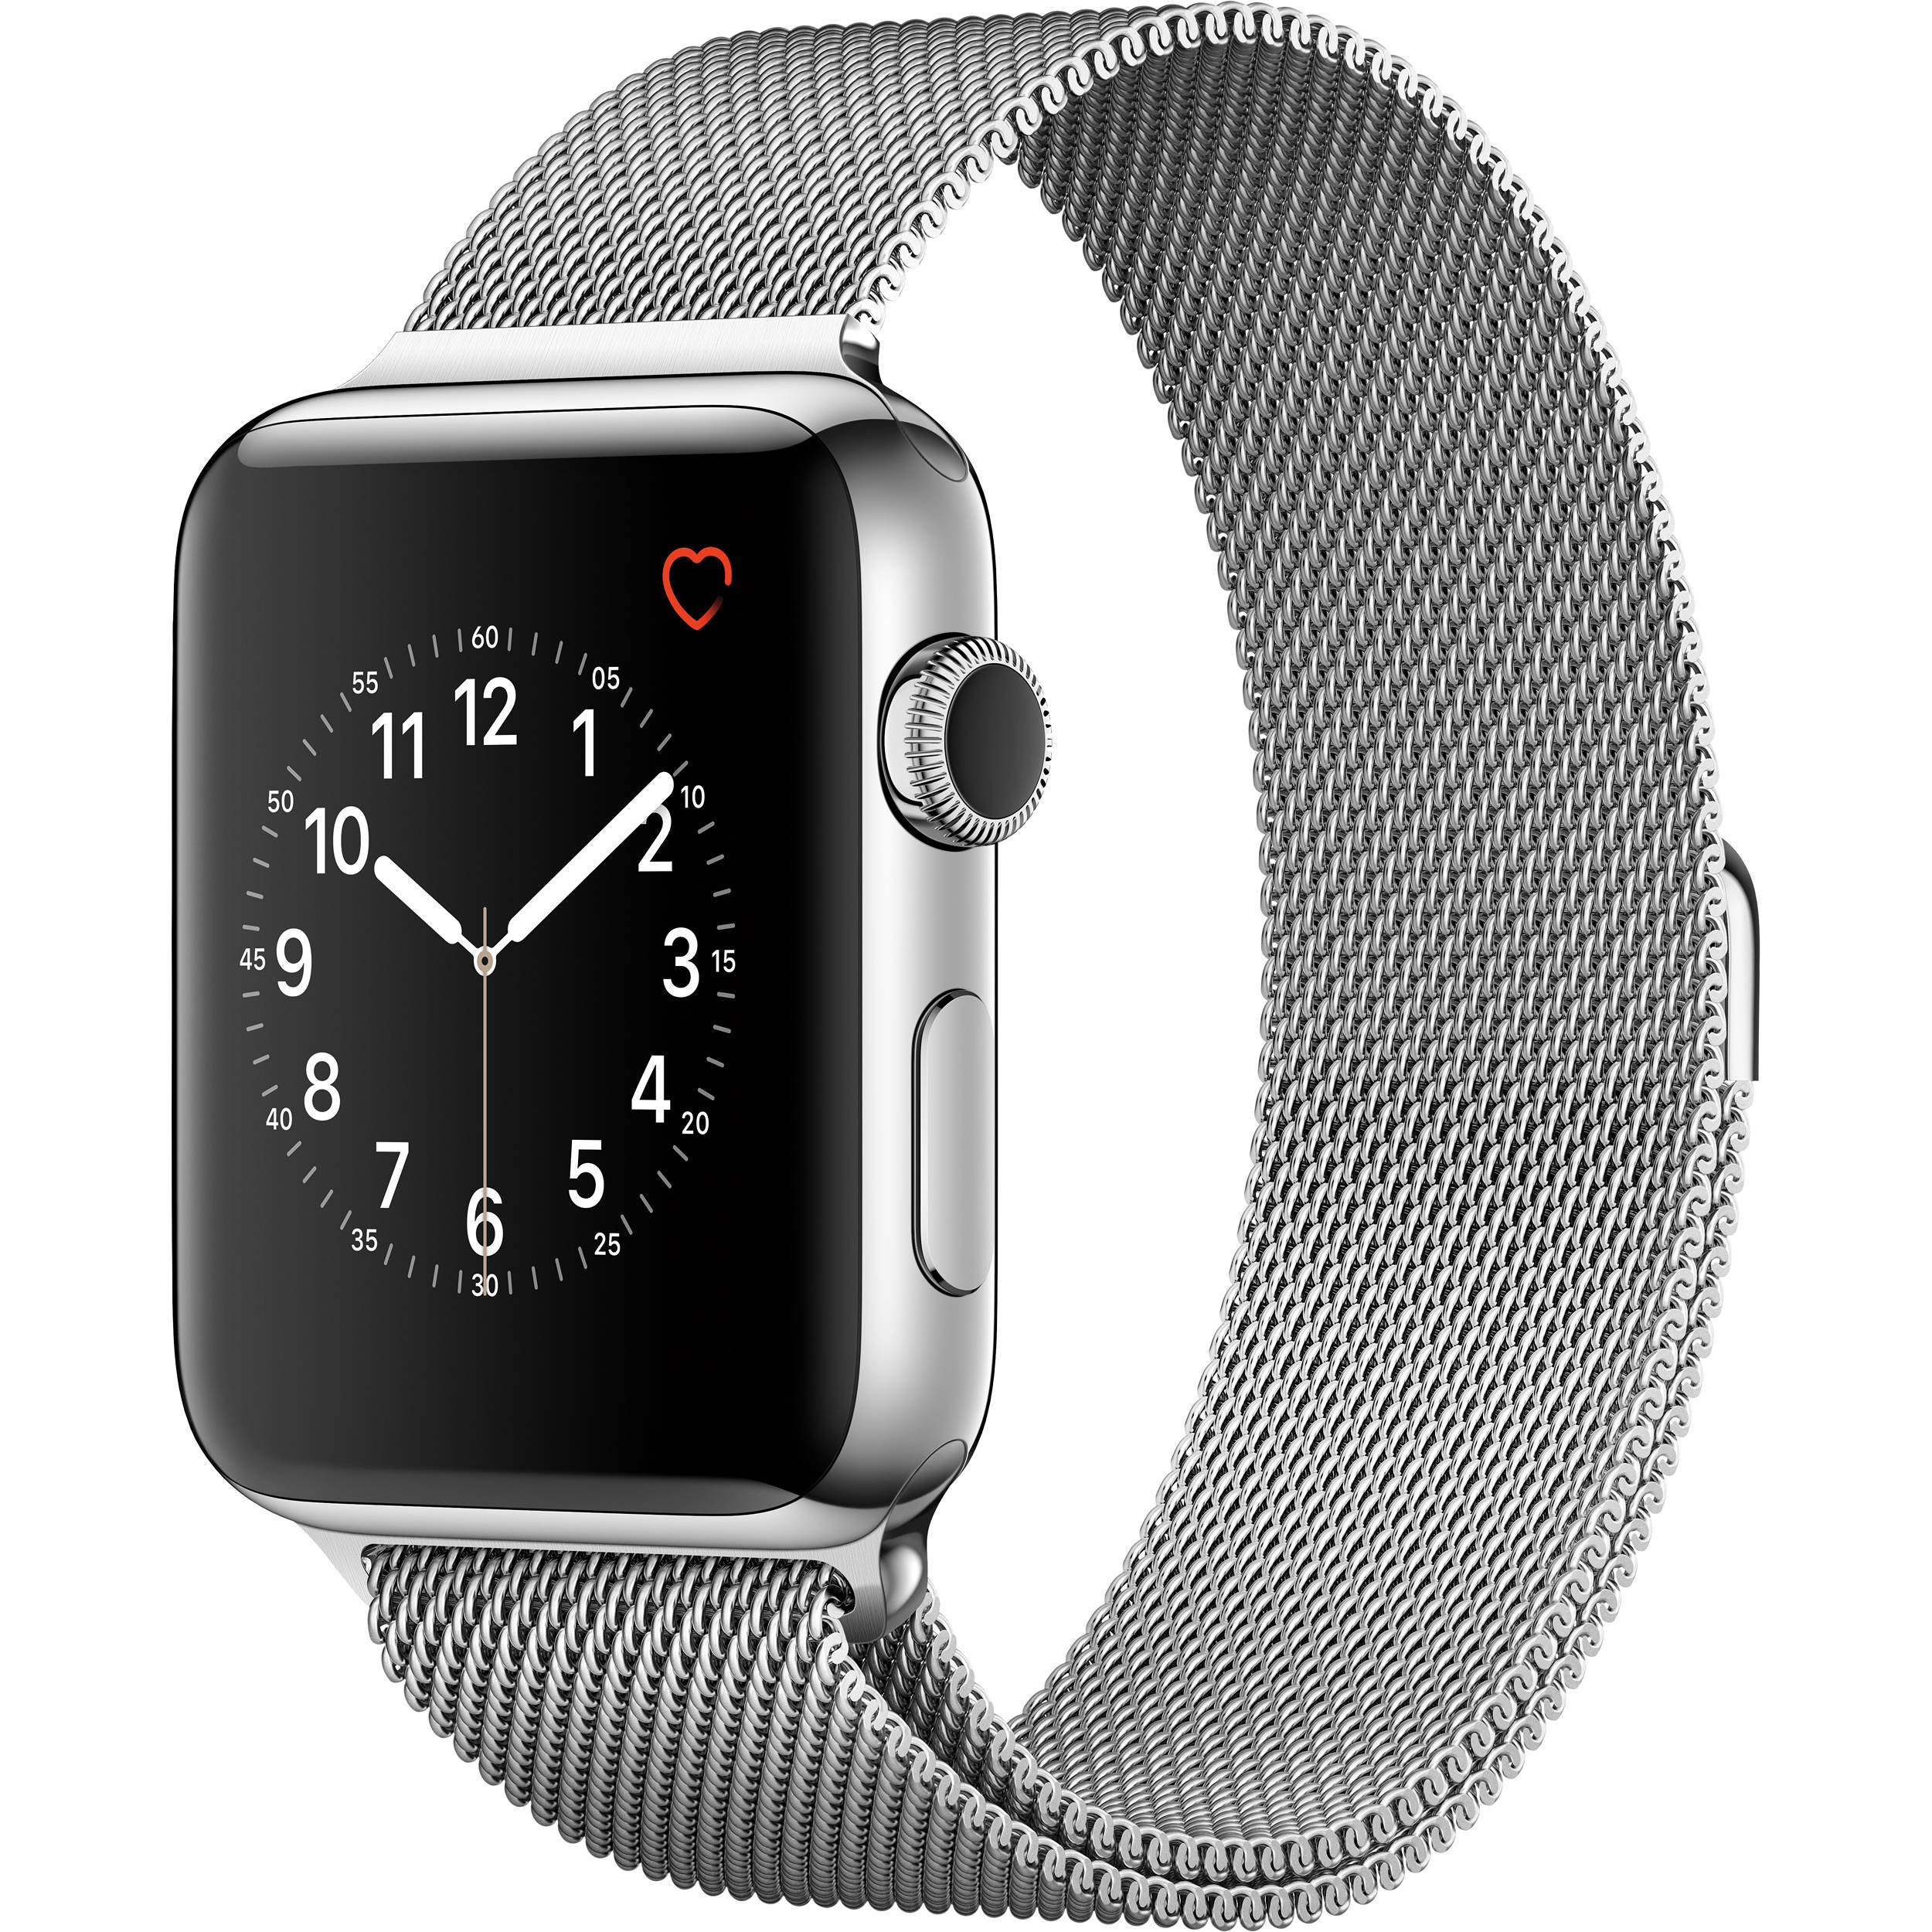 sports shoes 1ffbc 9e04f Apple Watch Series 2 42mm Smartwatch ( Stainless Steel Case, Milanese Loop  Band)